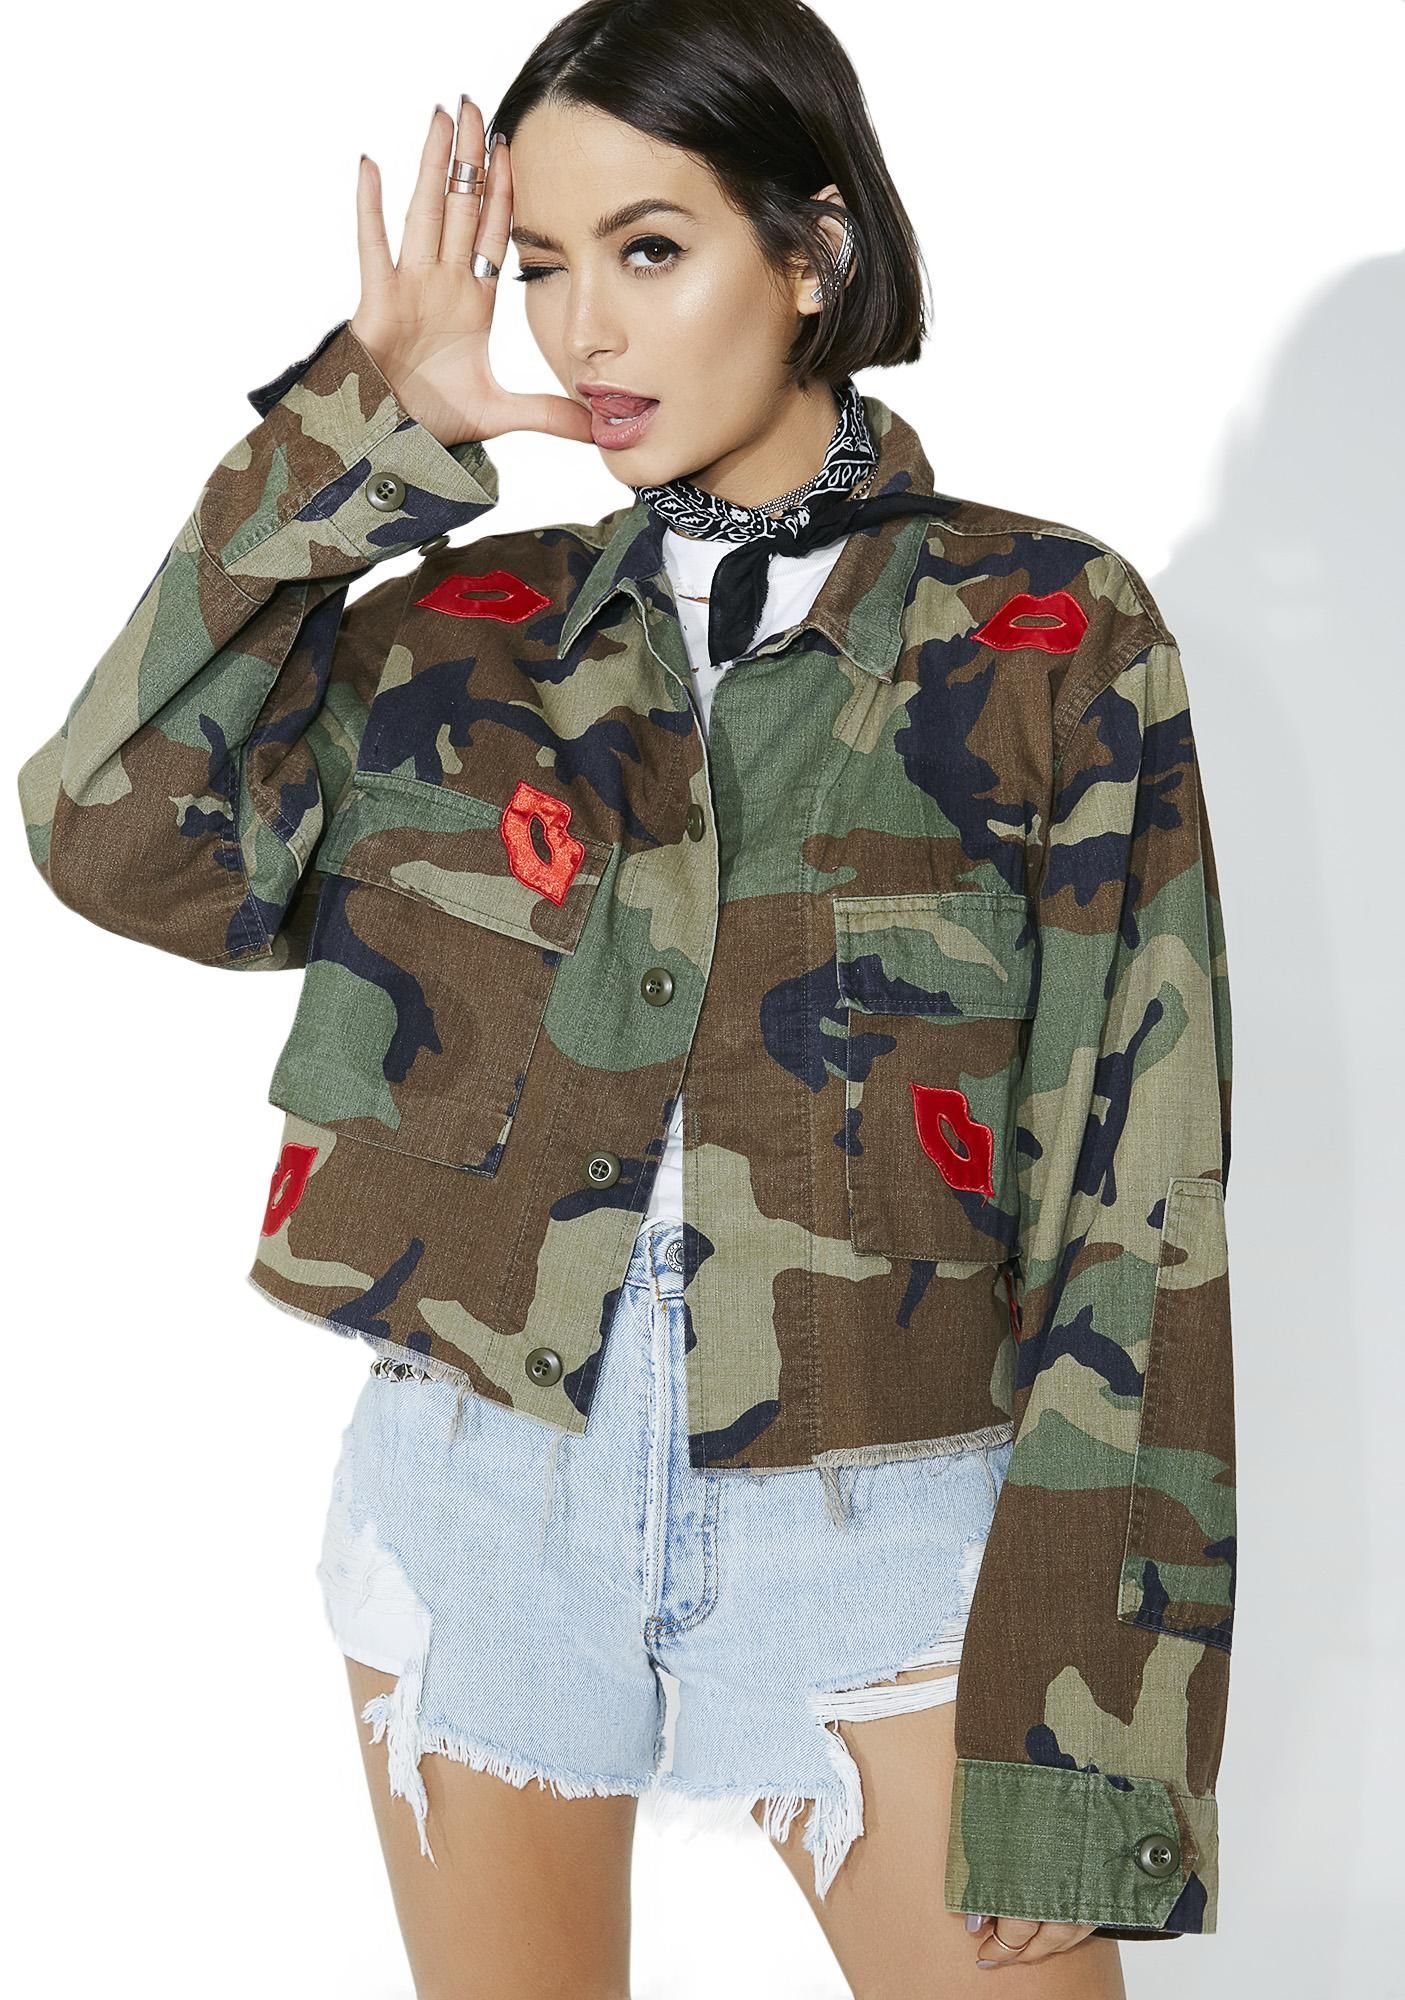 f5c8728f161df American Vintage Lip Patches Camo Jacket yew know yer gonna break some  hearts, babe. Blow 'em a kiss in this jacket that features a green camo  print ...